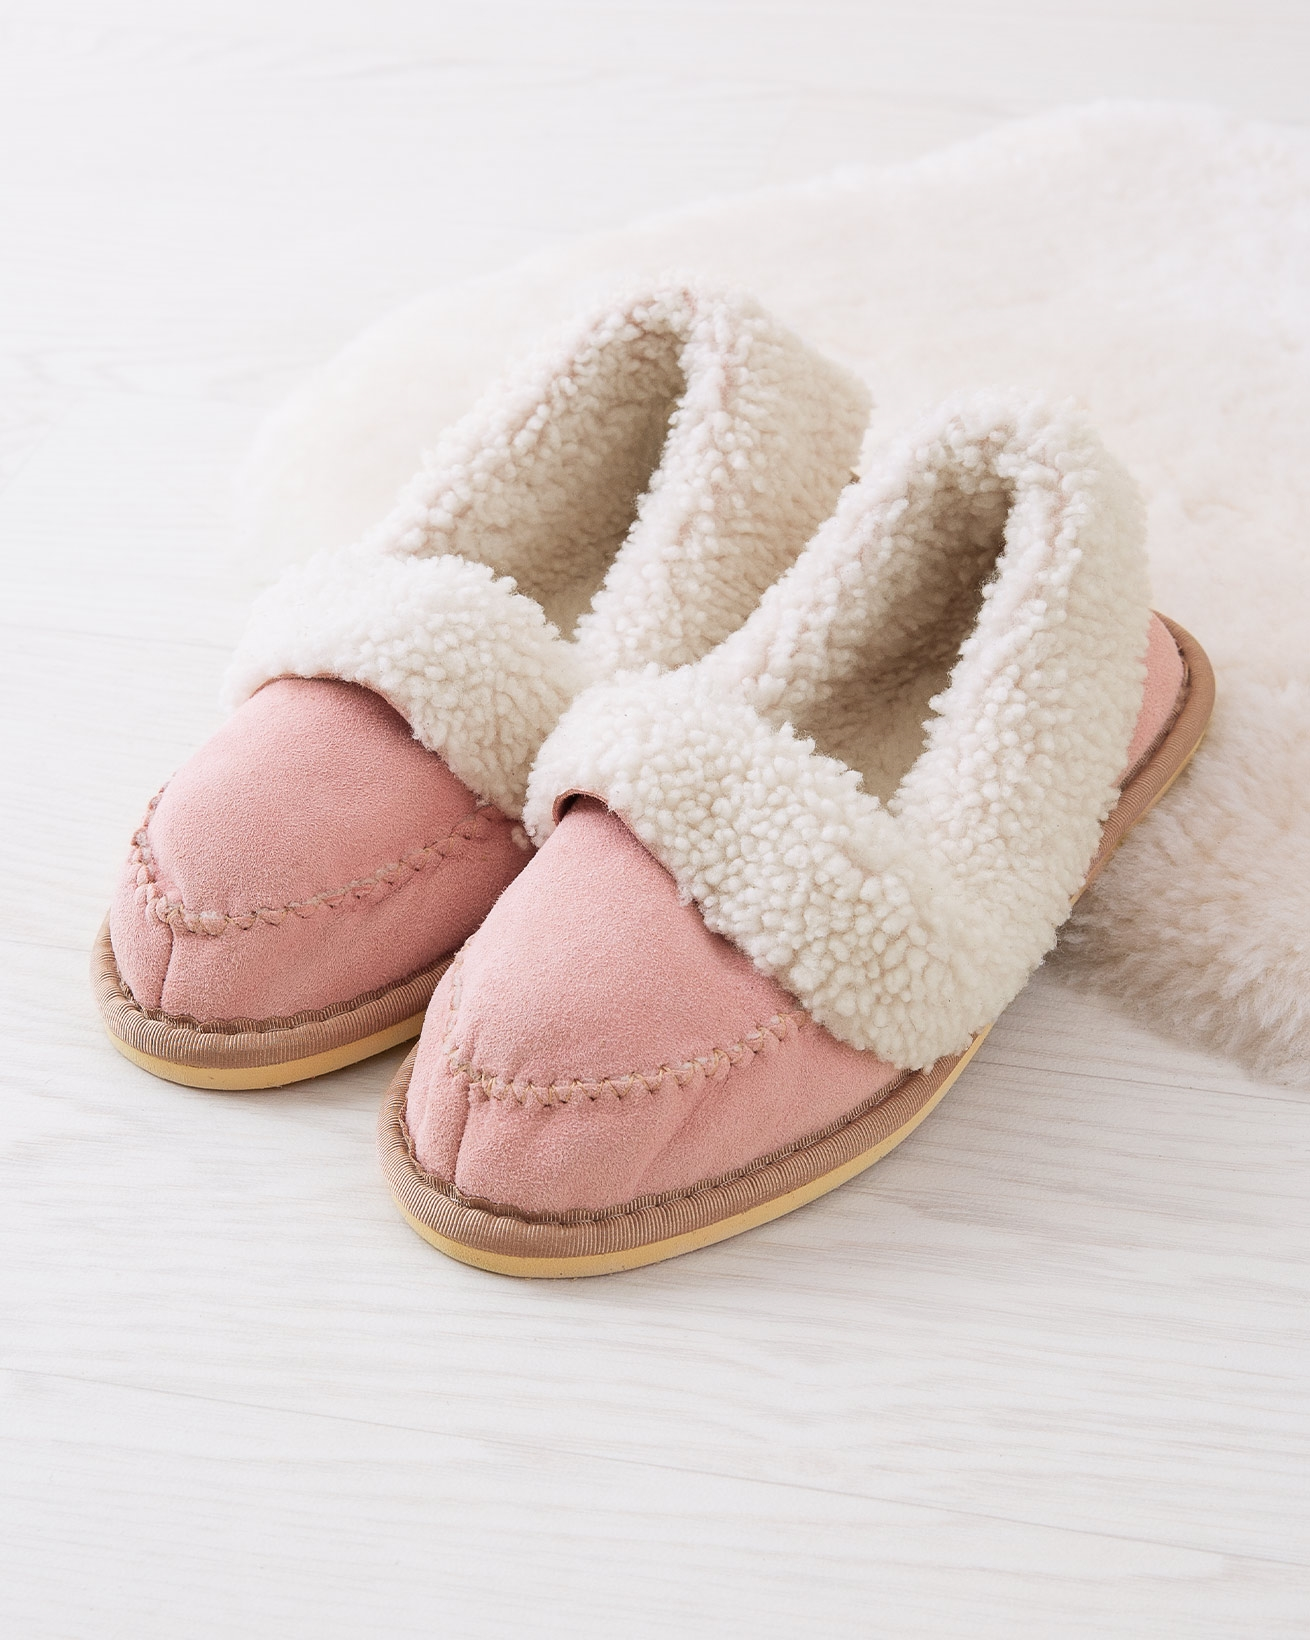 7446_halona-slippers_light-pink_lifestyle_lfs.jpg